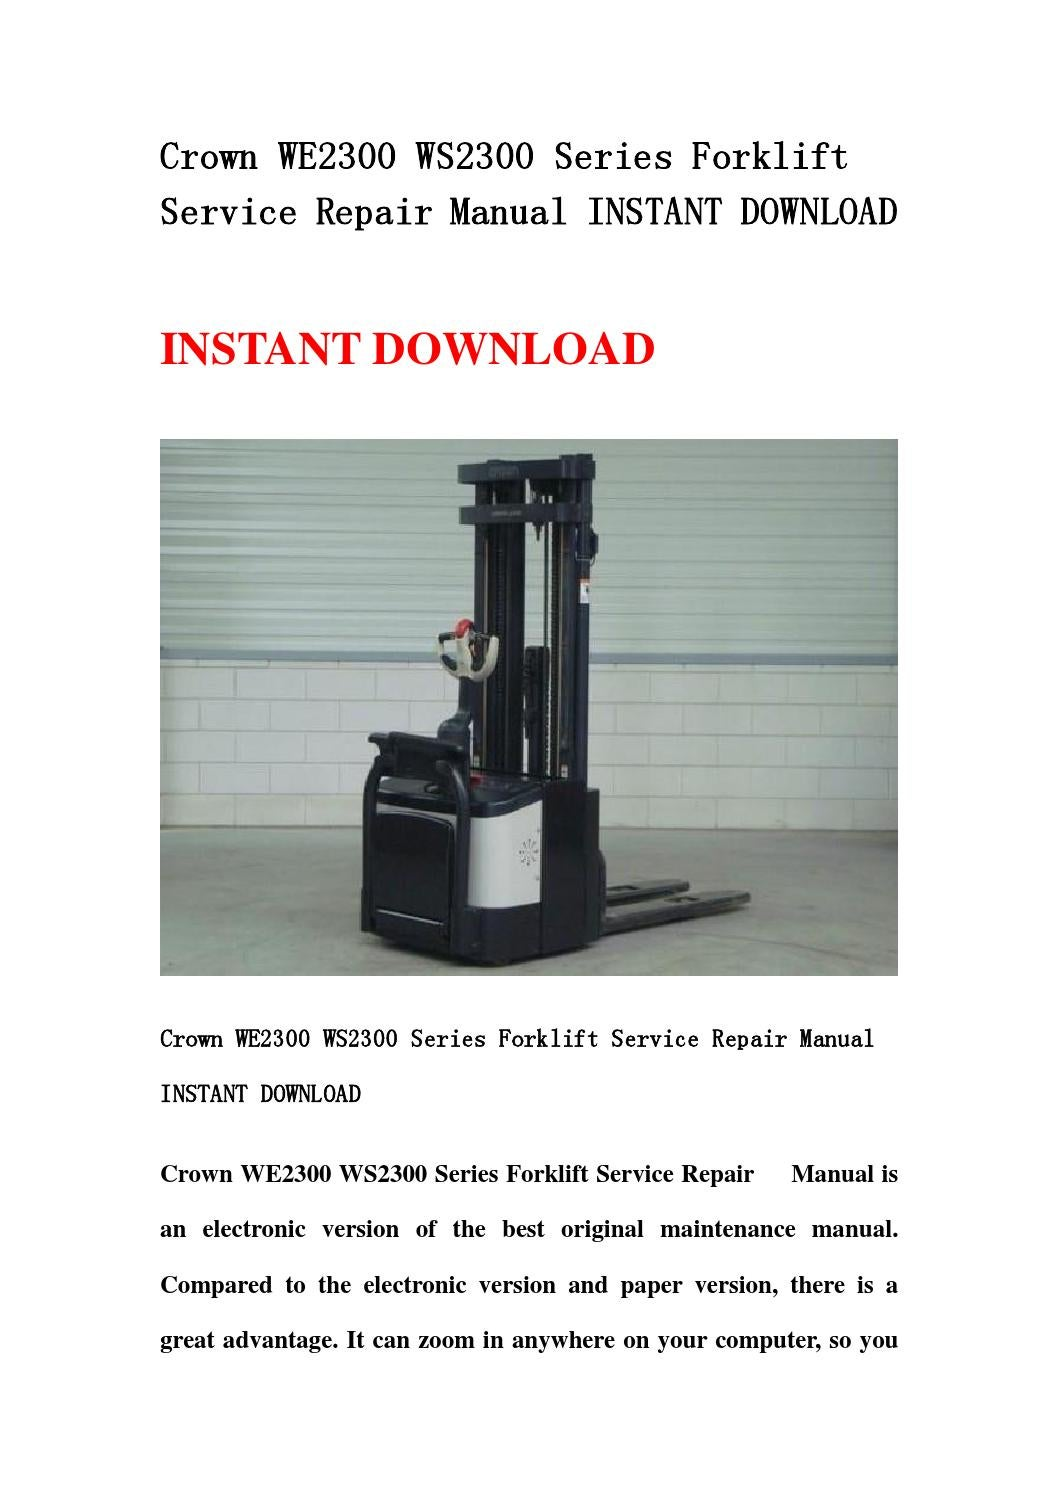 Crown WE2300 WS2300 Series Forklift Service amp Parts Manual